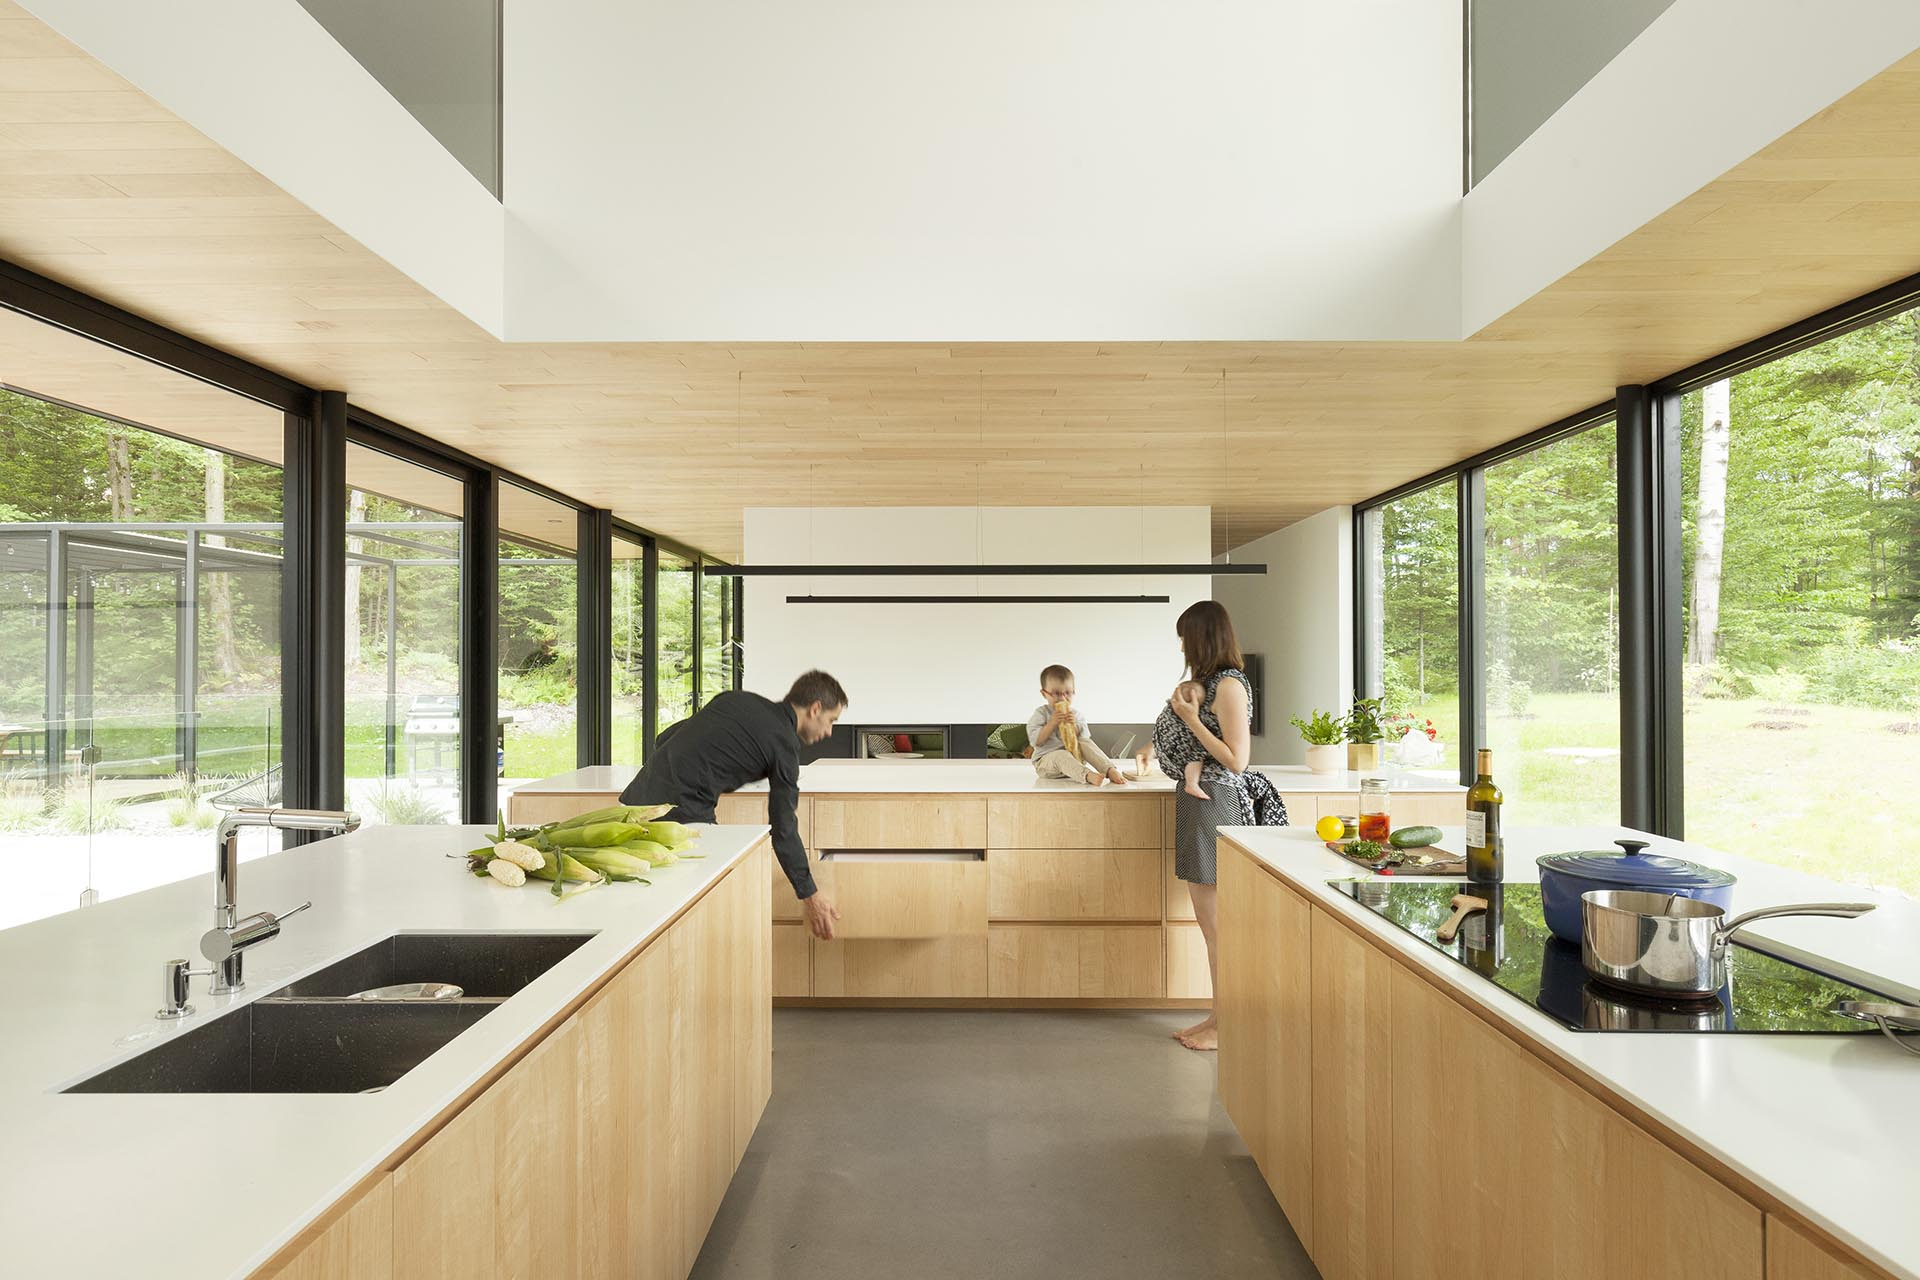 A modern kitchen design with three islands, a double height ceiling, and a wall of cabinets.